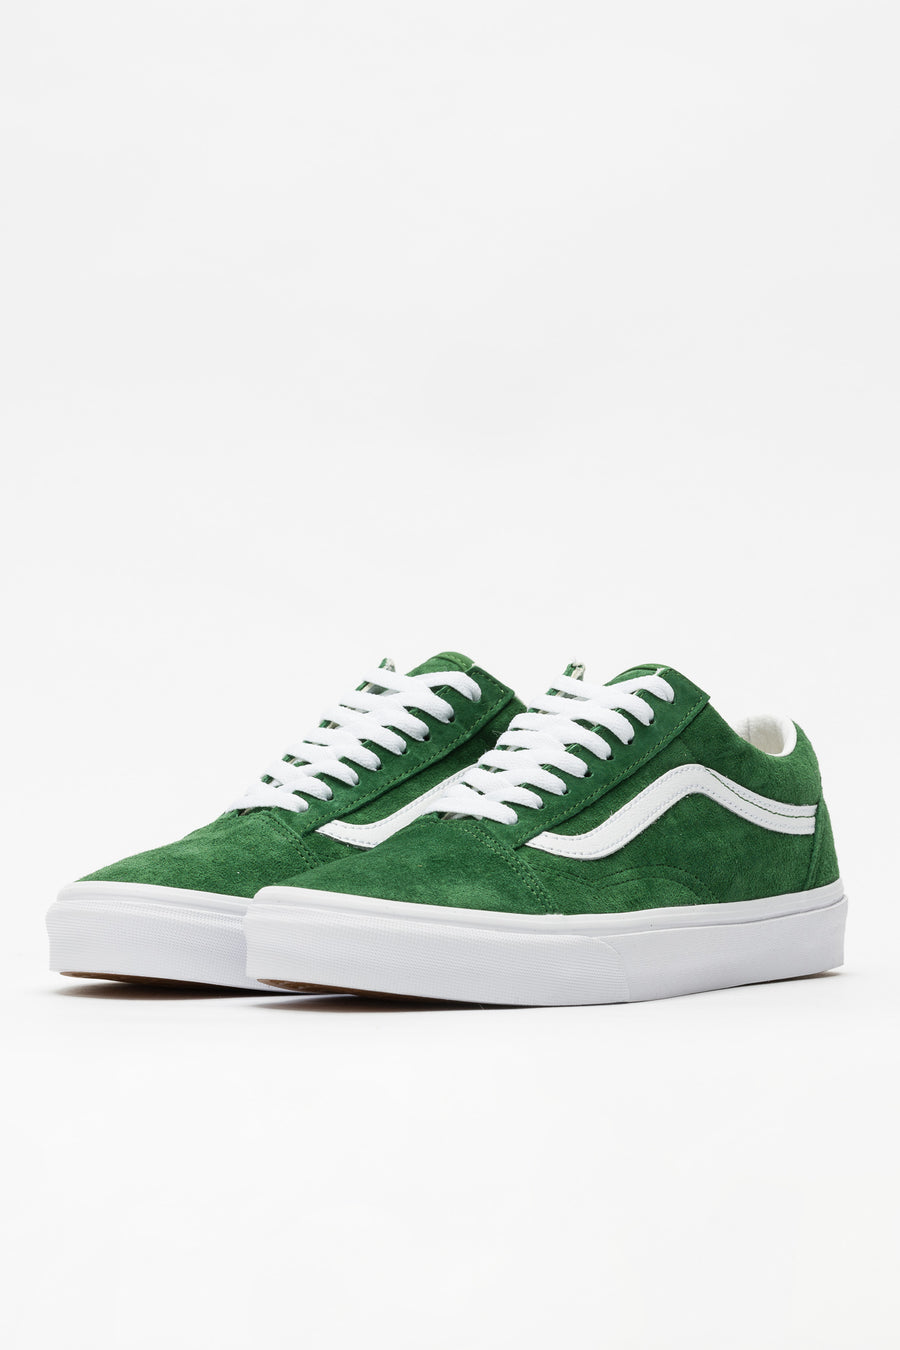 Vans Old Skool Pig Suede in Fairway - Notre